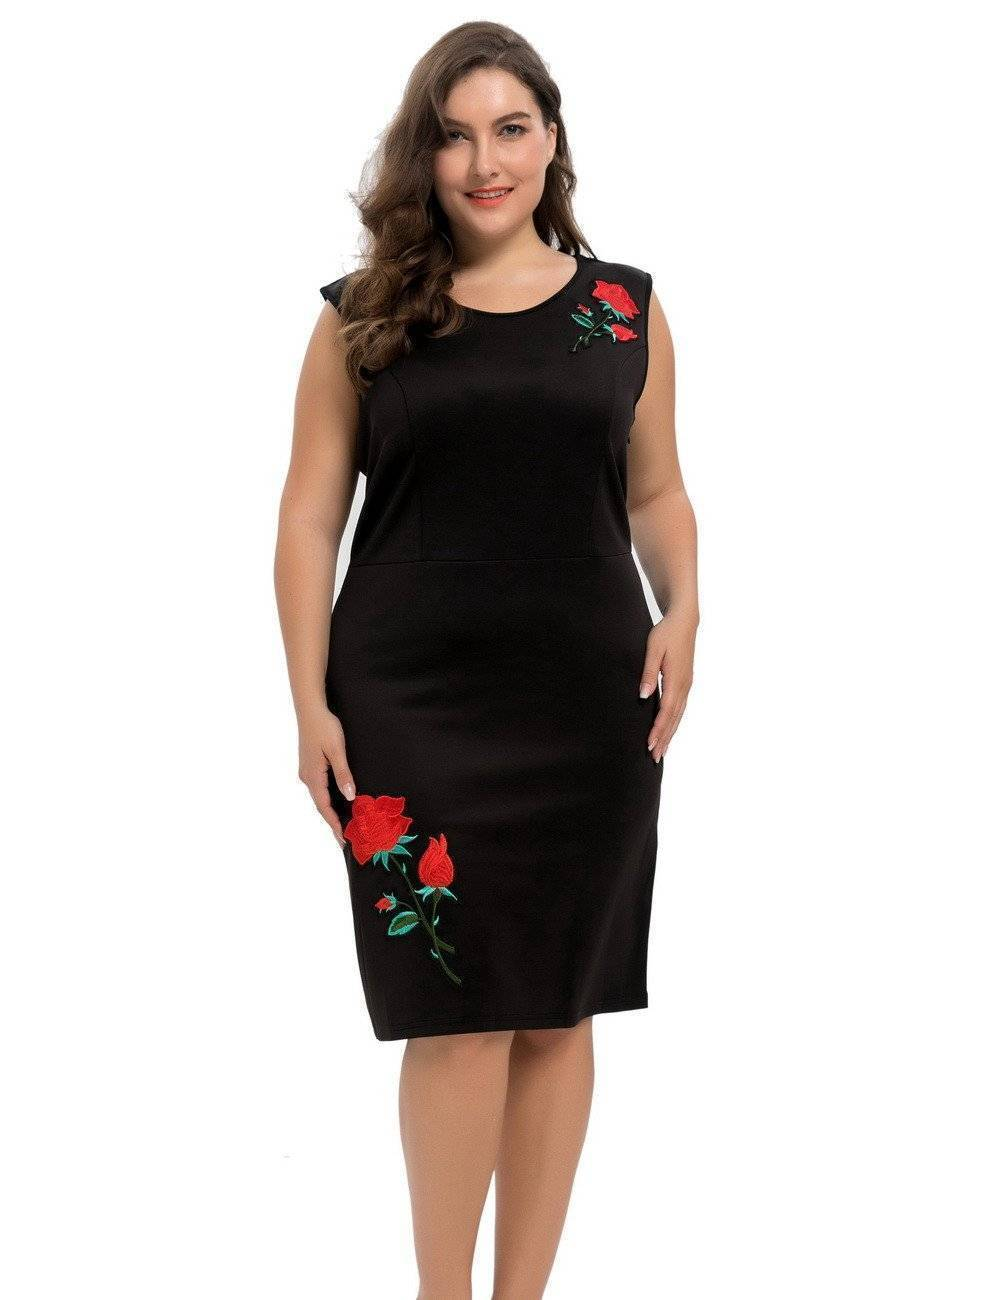 Women's Stretch Scuba Plus Size Sheath Dress with Rose Embroidery